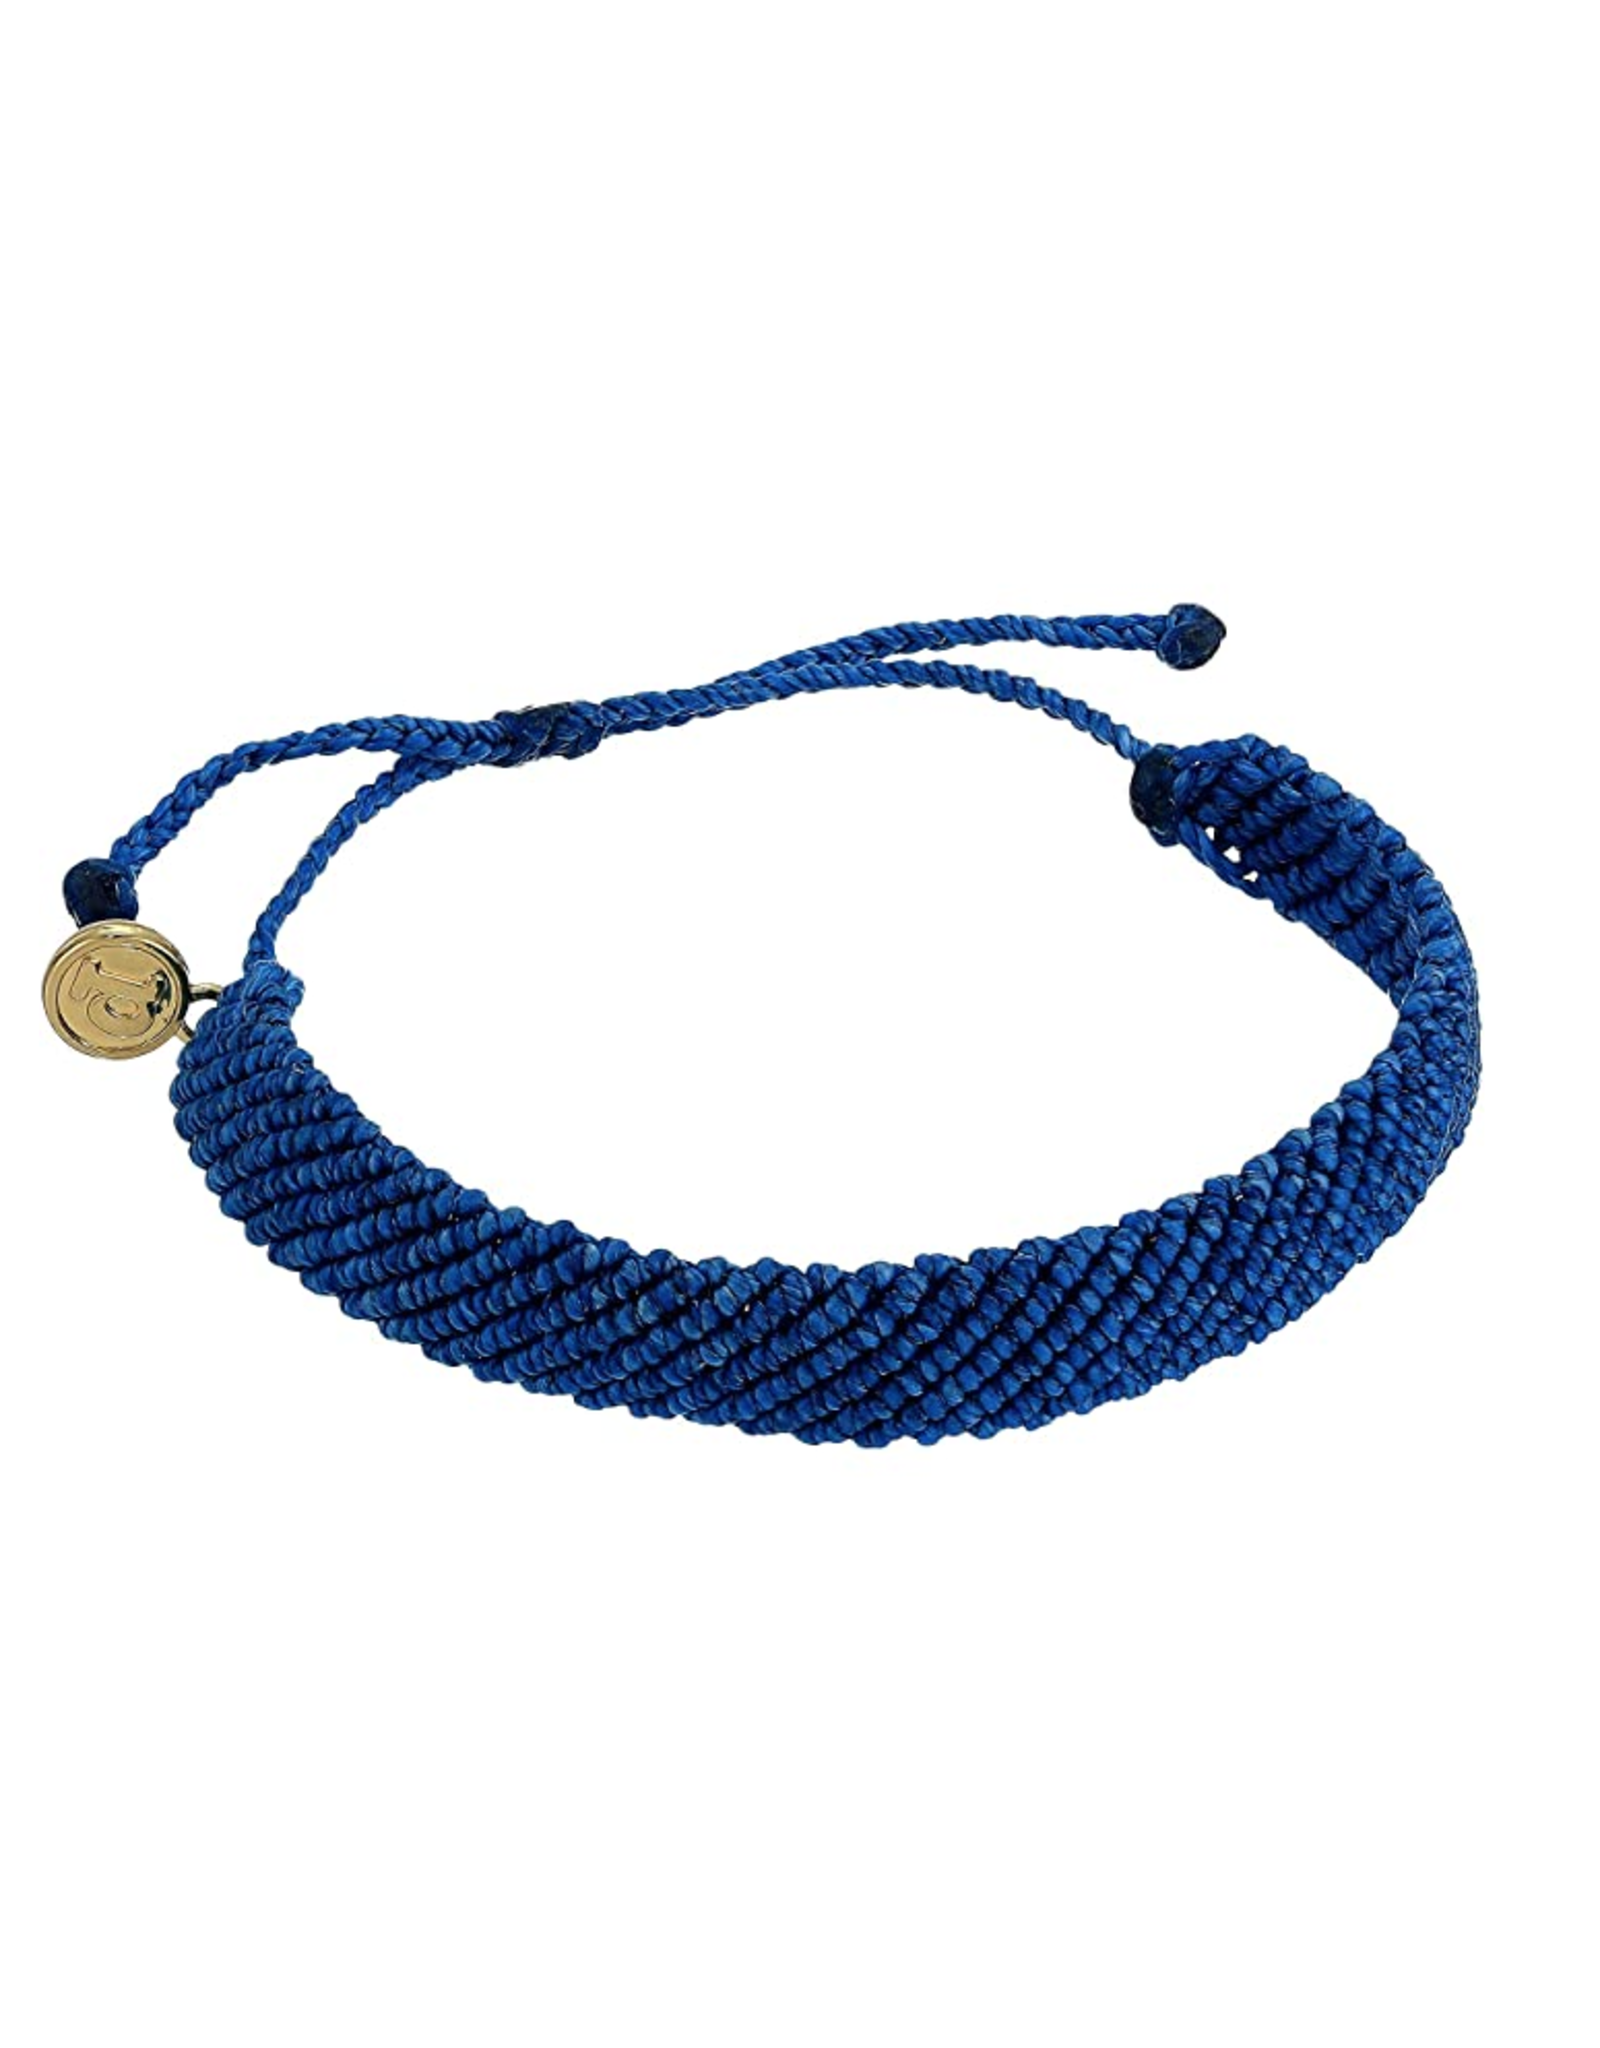 PURA VIDA FLATBRAIDED BLUE-TIFUL BRACELET